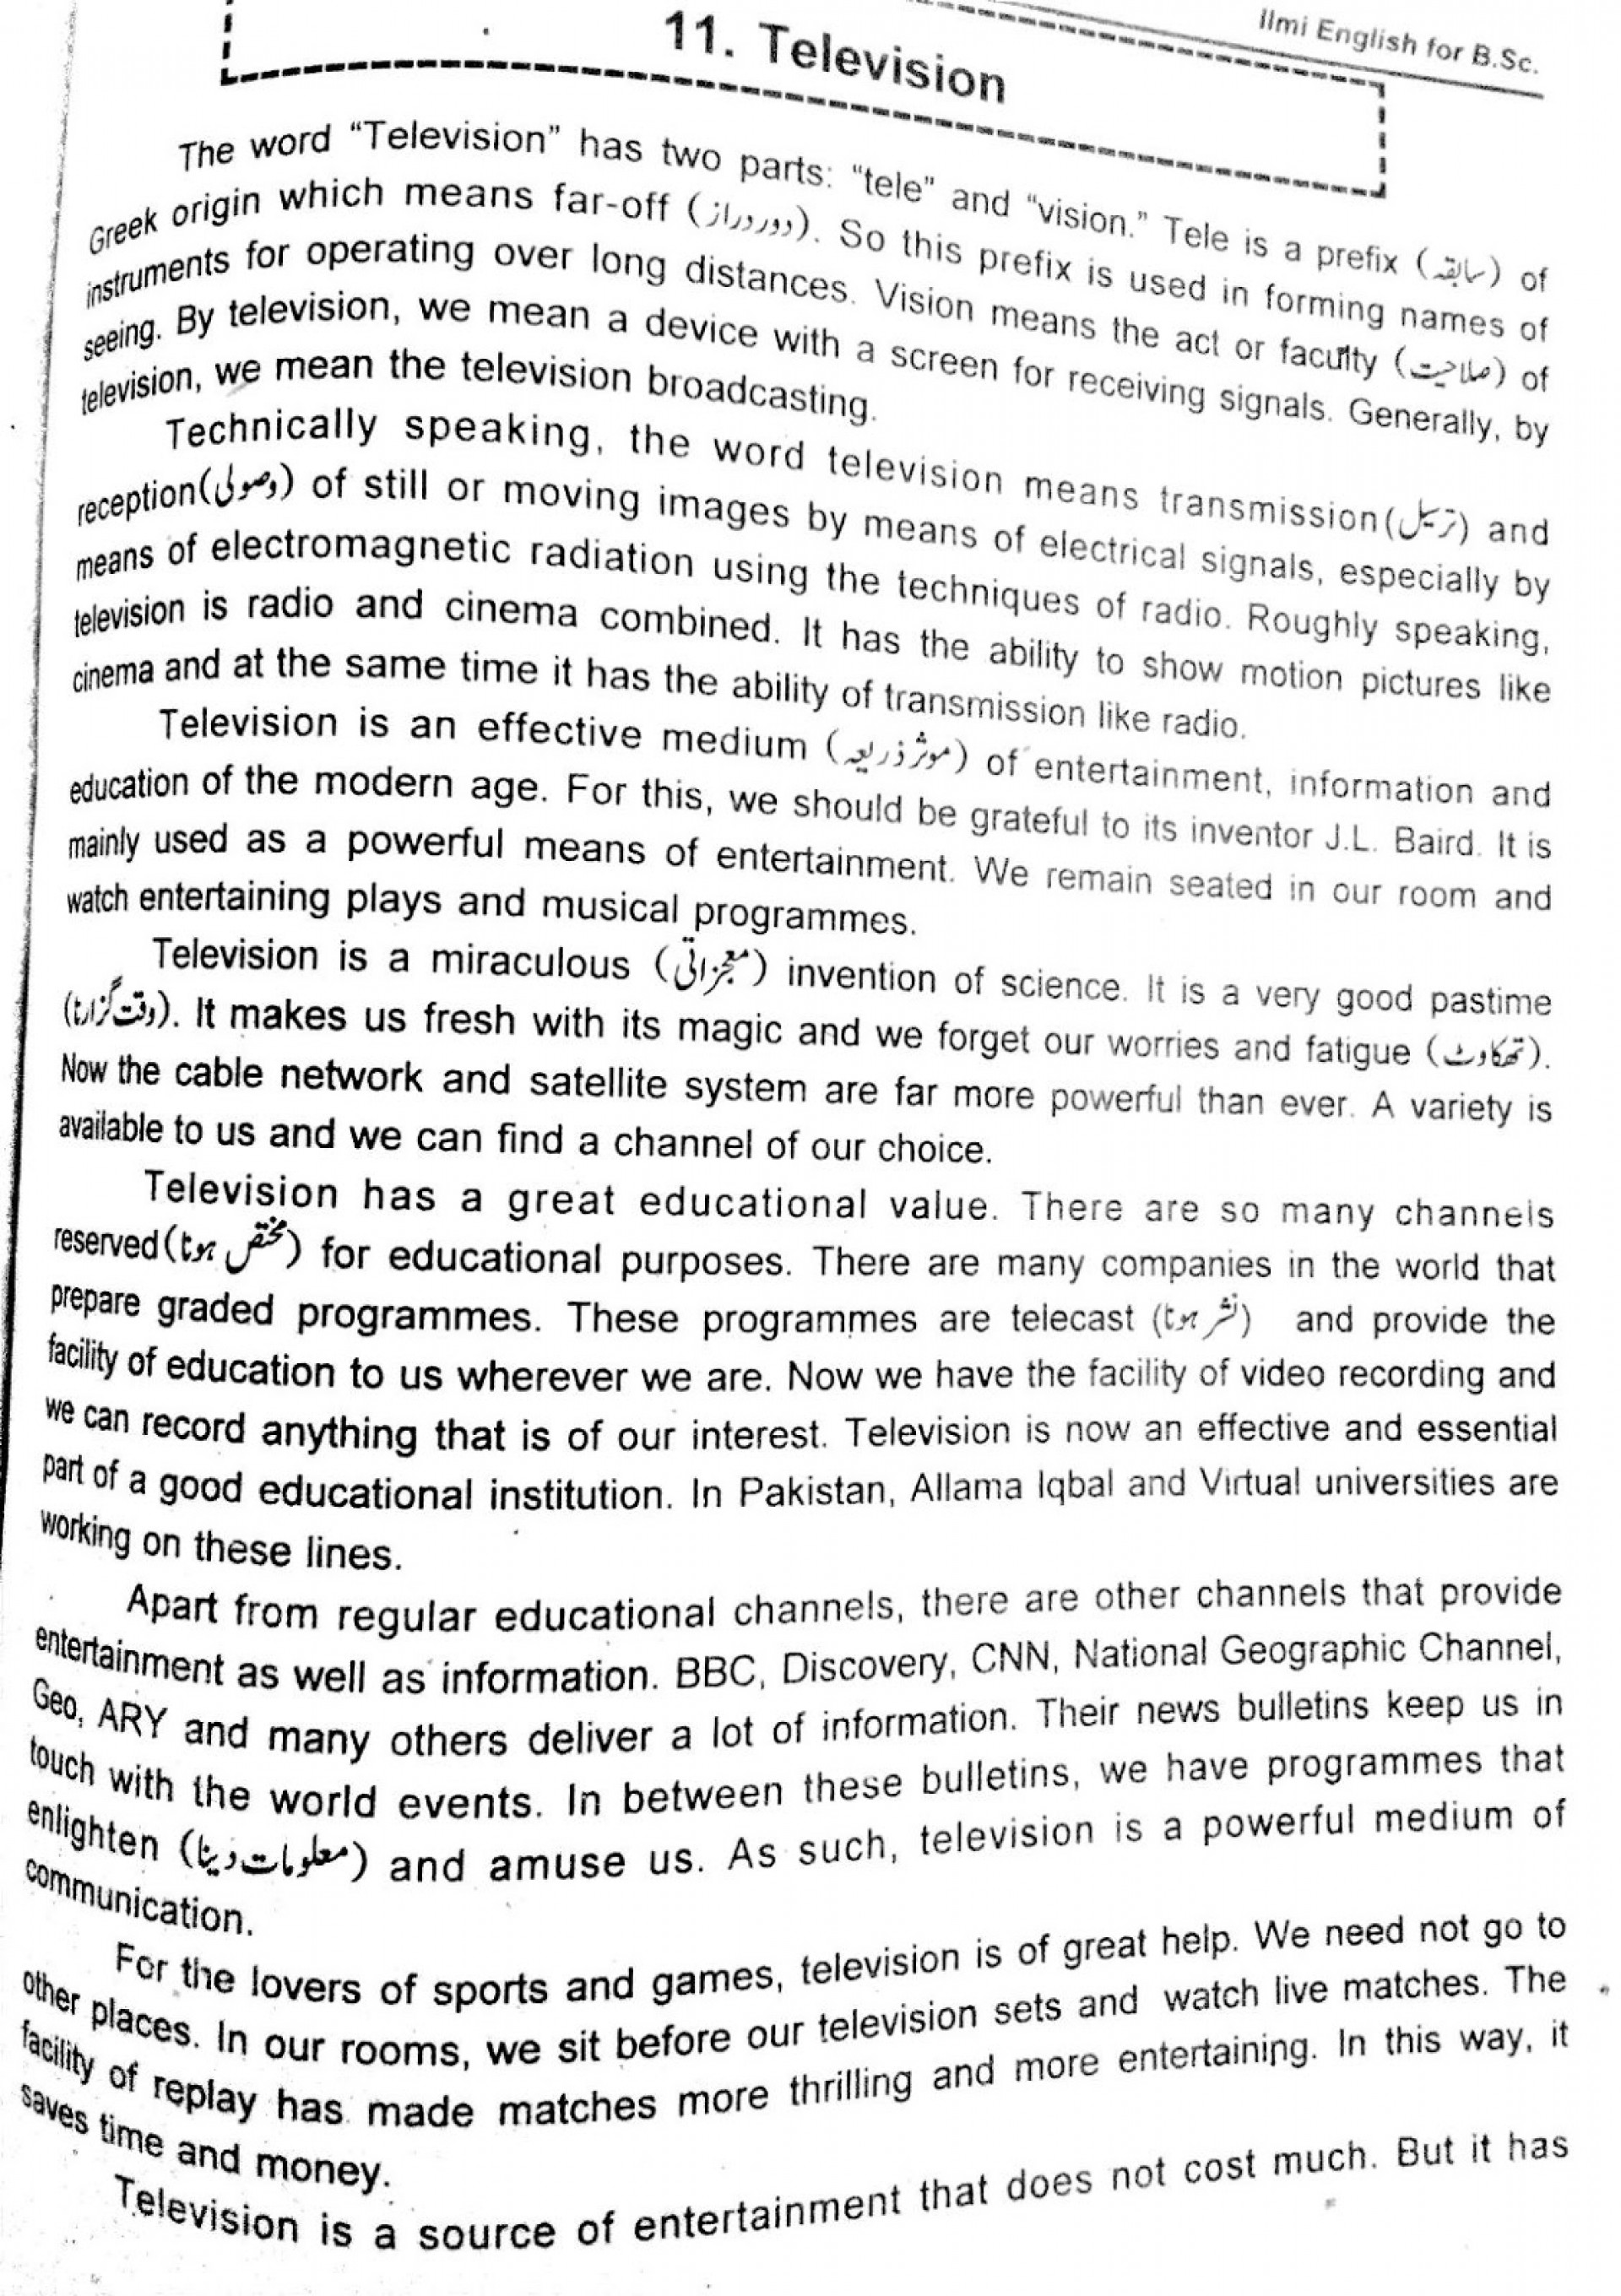 014 Essay Example Tv Addiction For Bsc Beautiful 1920